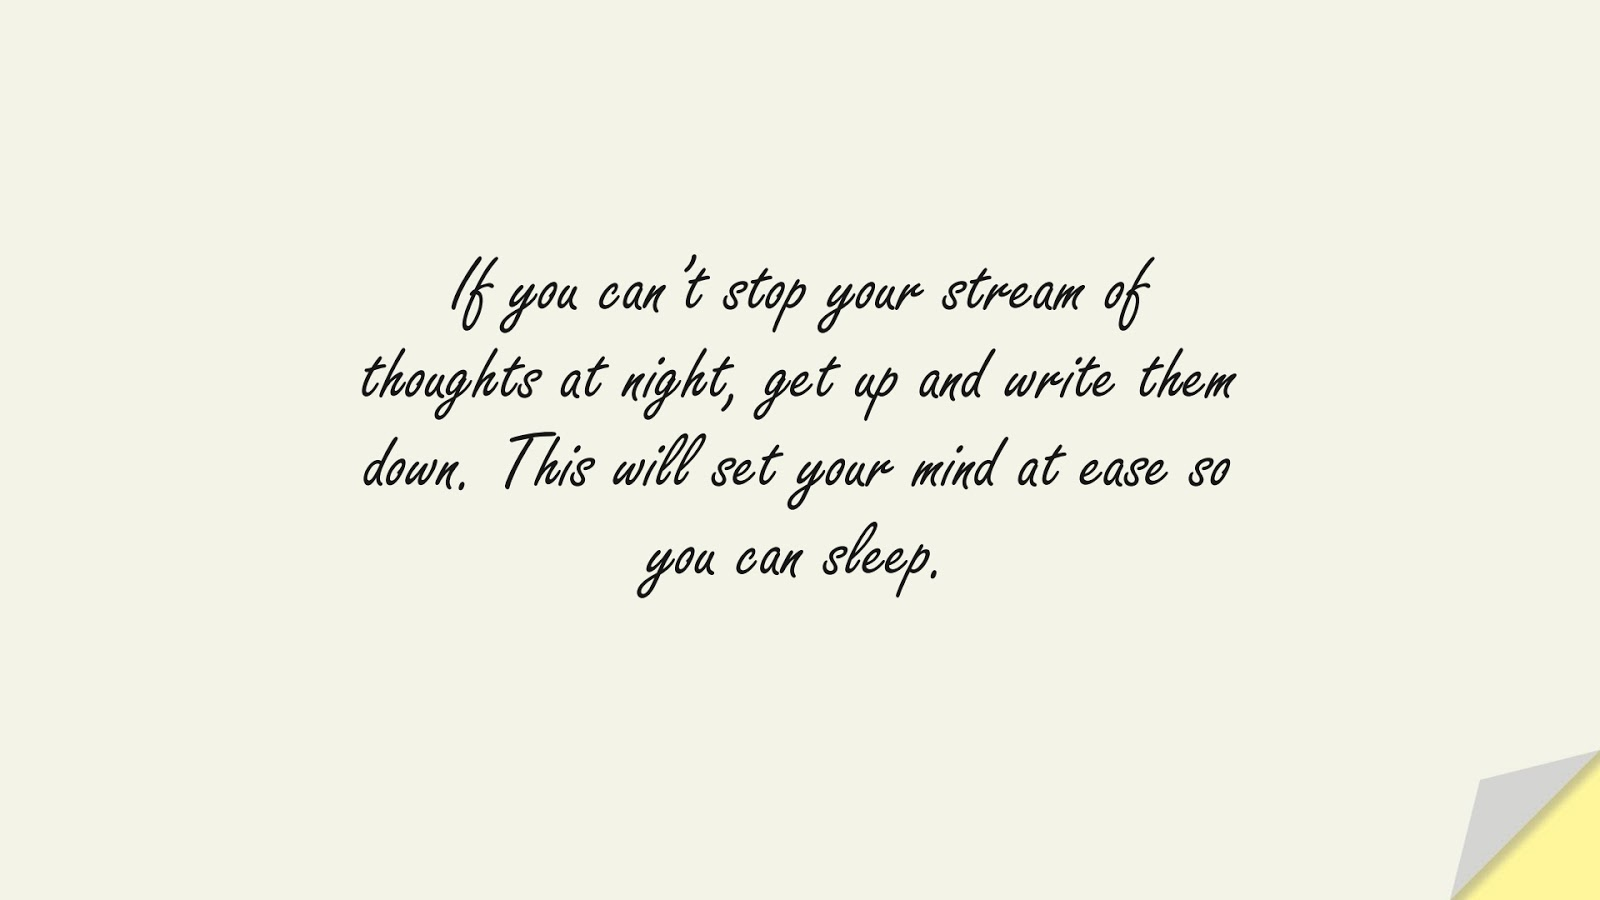 If you can't stop your stream of thoughts at night, get up and write them down. This will set your mind at ease so you can sleep.FALSE